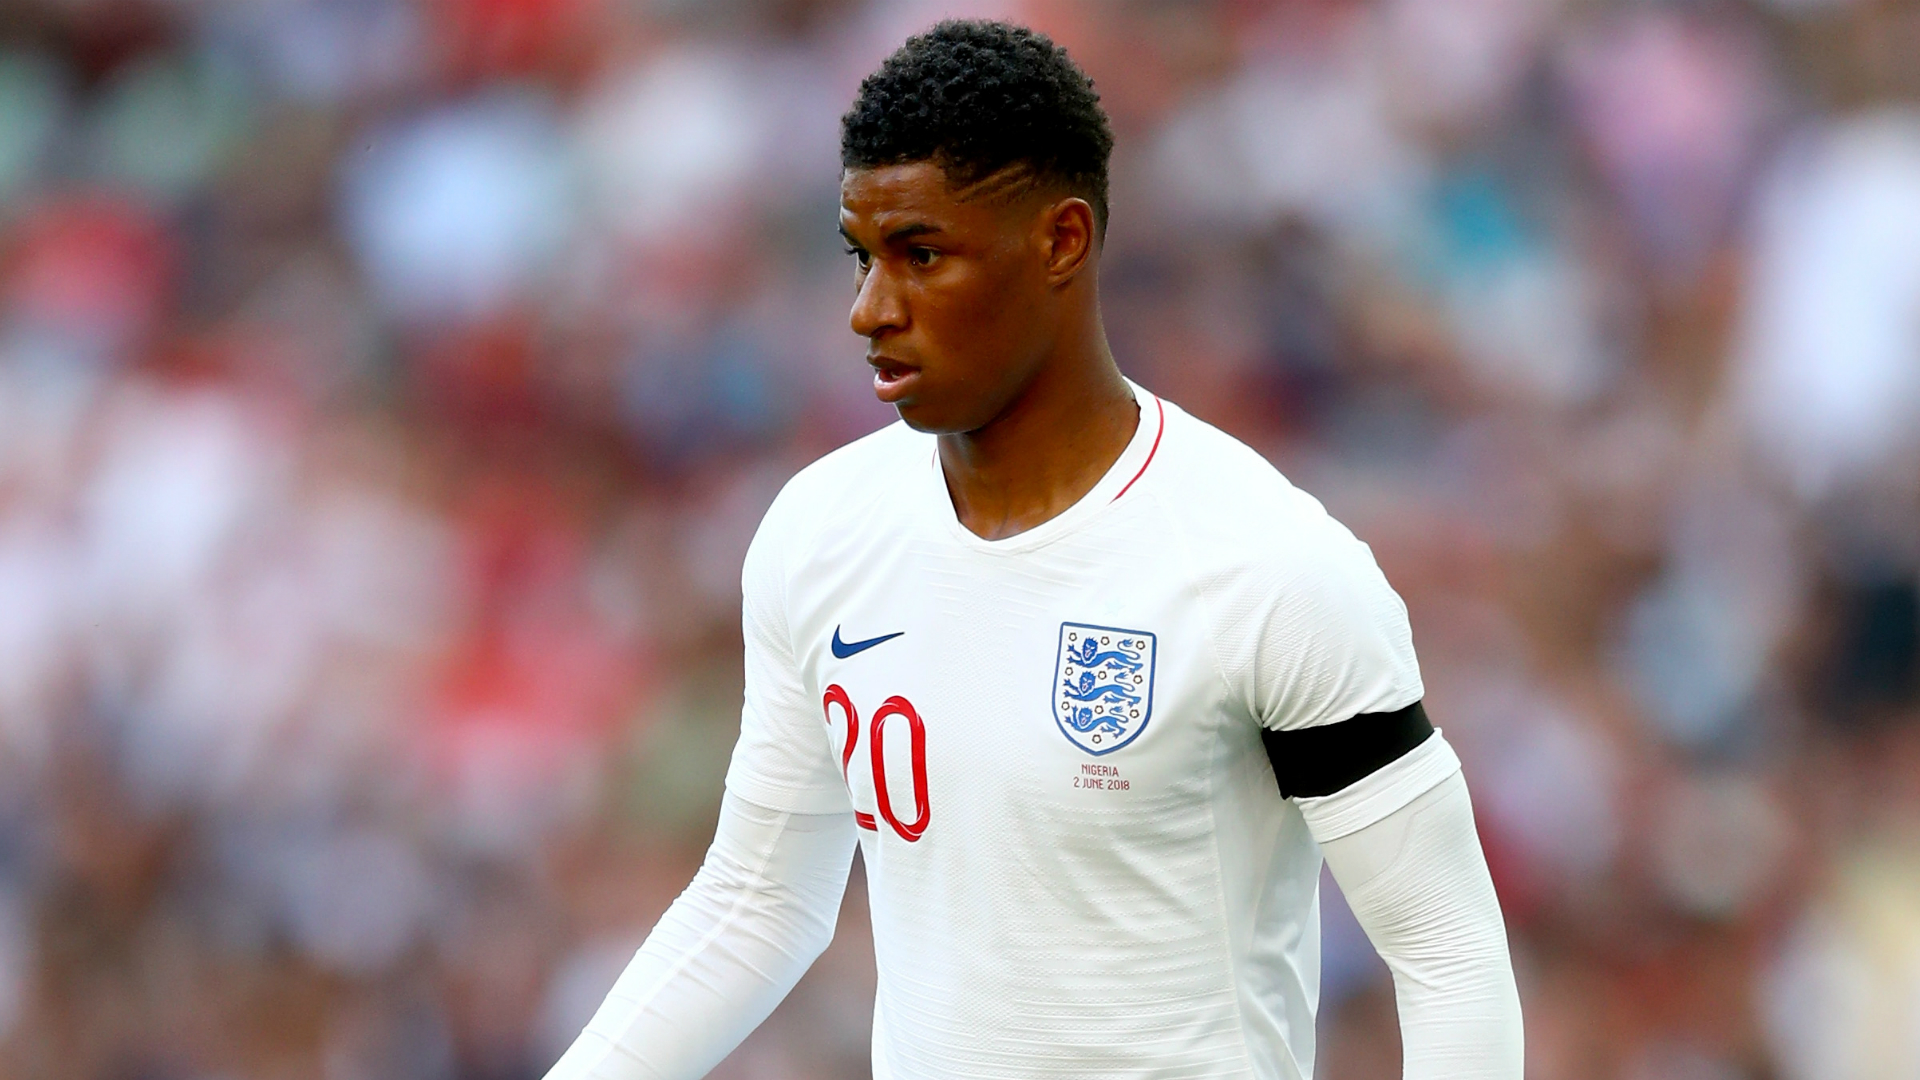 outlet store 2f214 9fd60 Rashford eager for Euro 2016 redemption in Russia   FOOTBALL ...